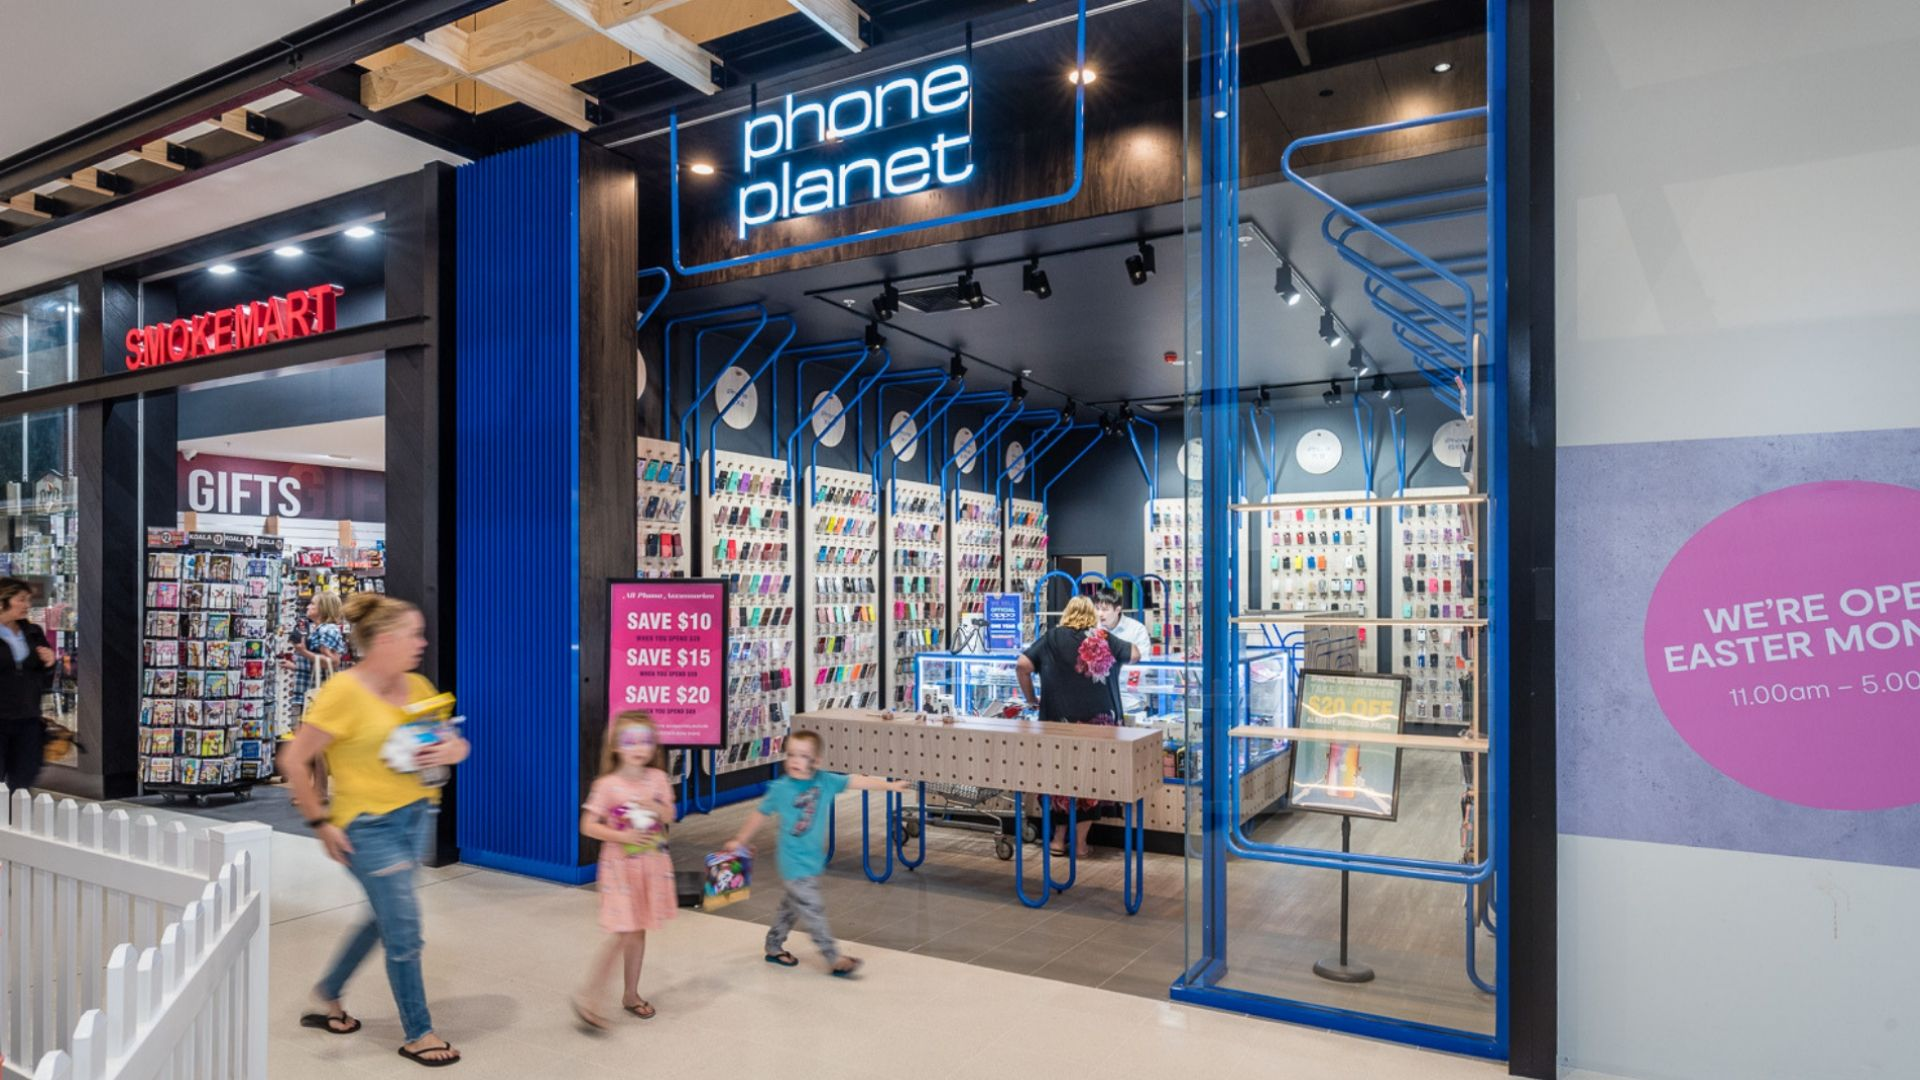 Port Adelaide Plaza - Retailer - Phone Planet